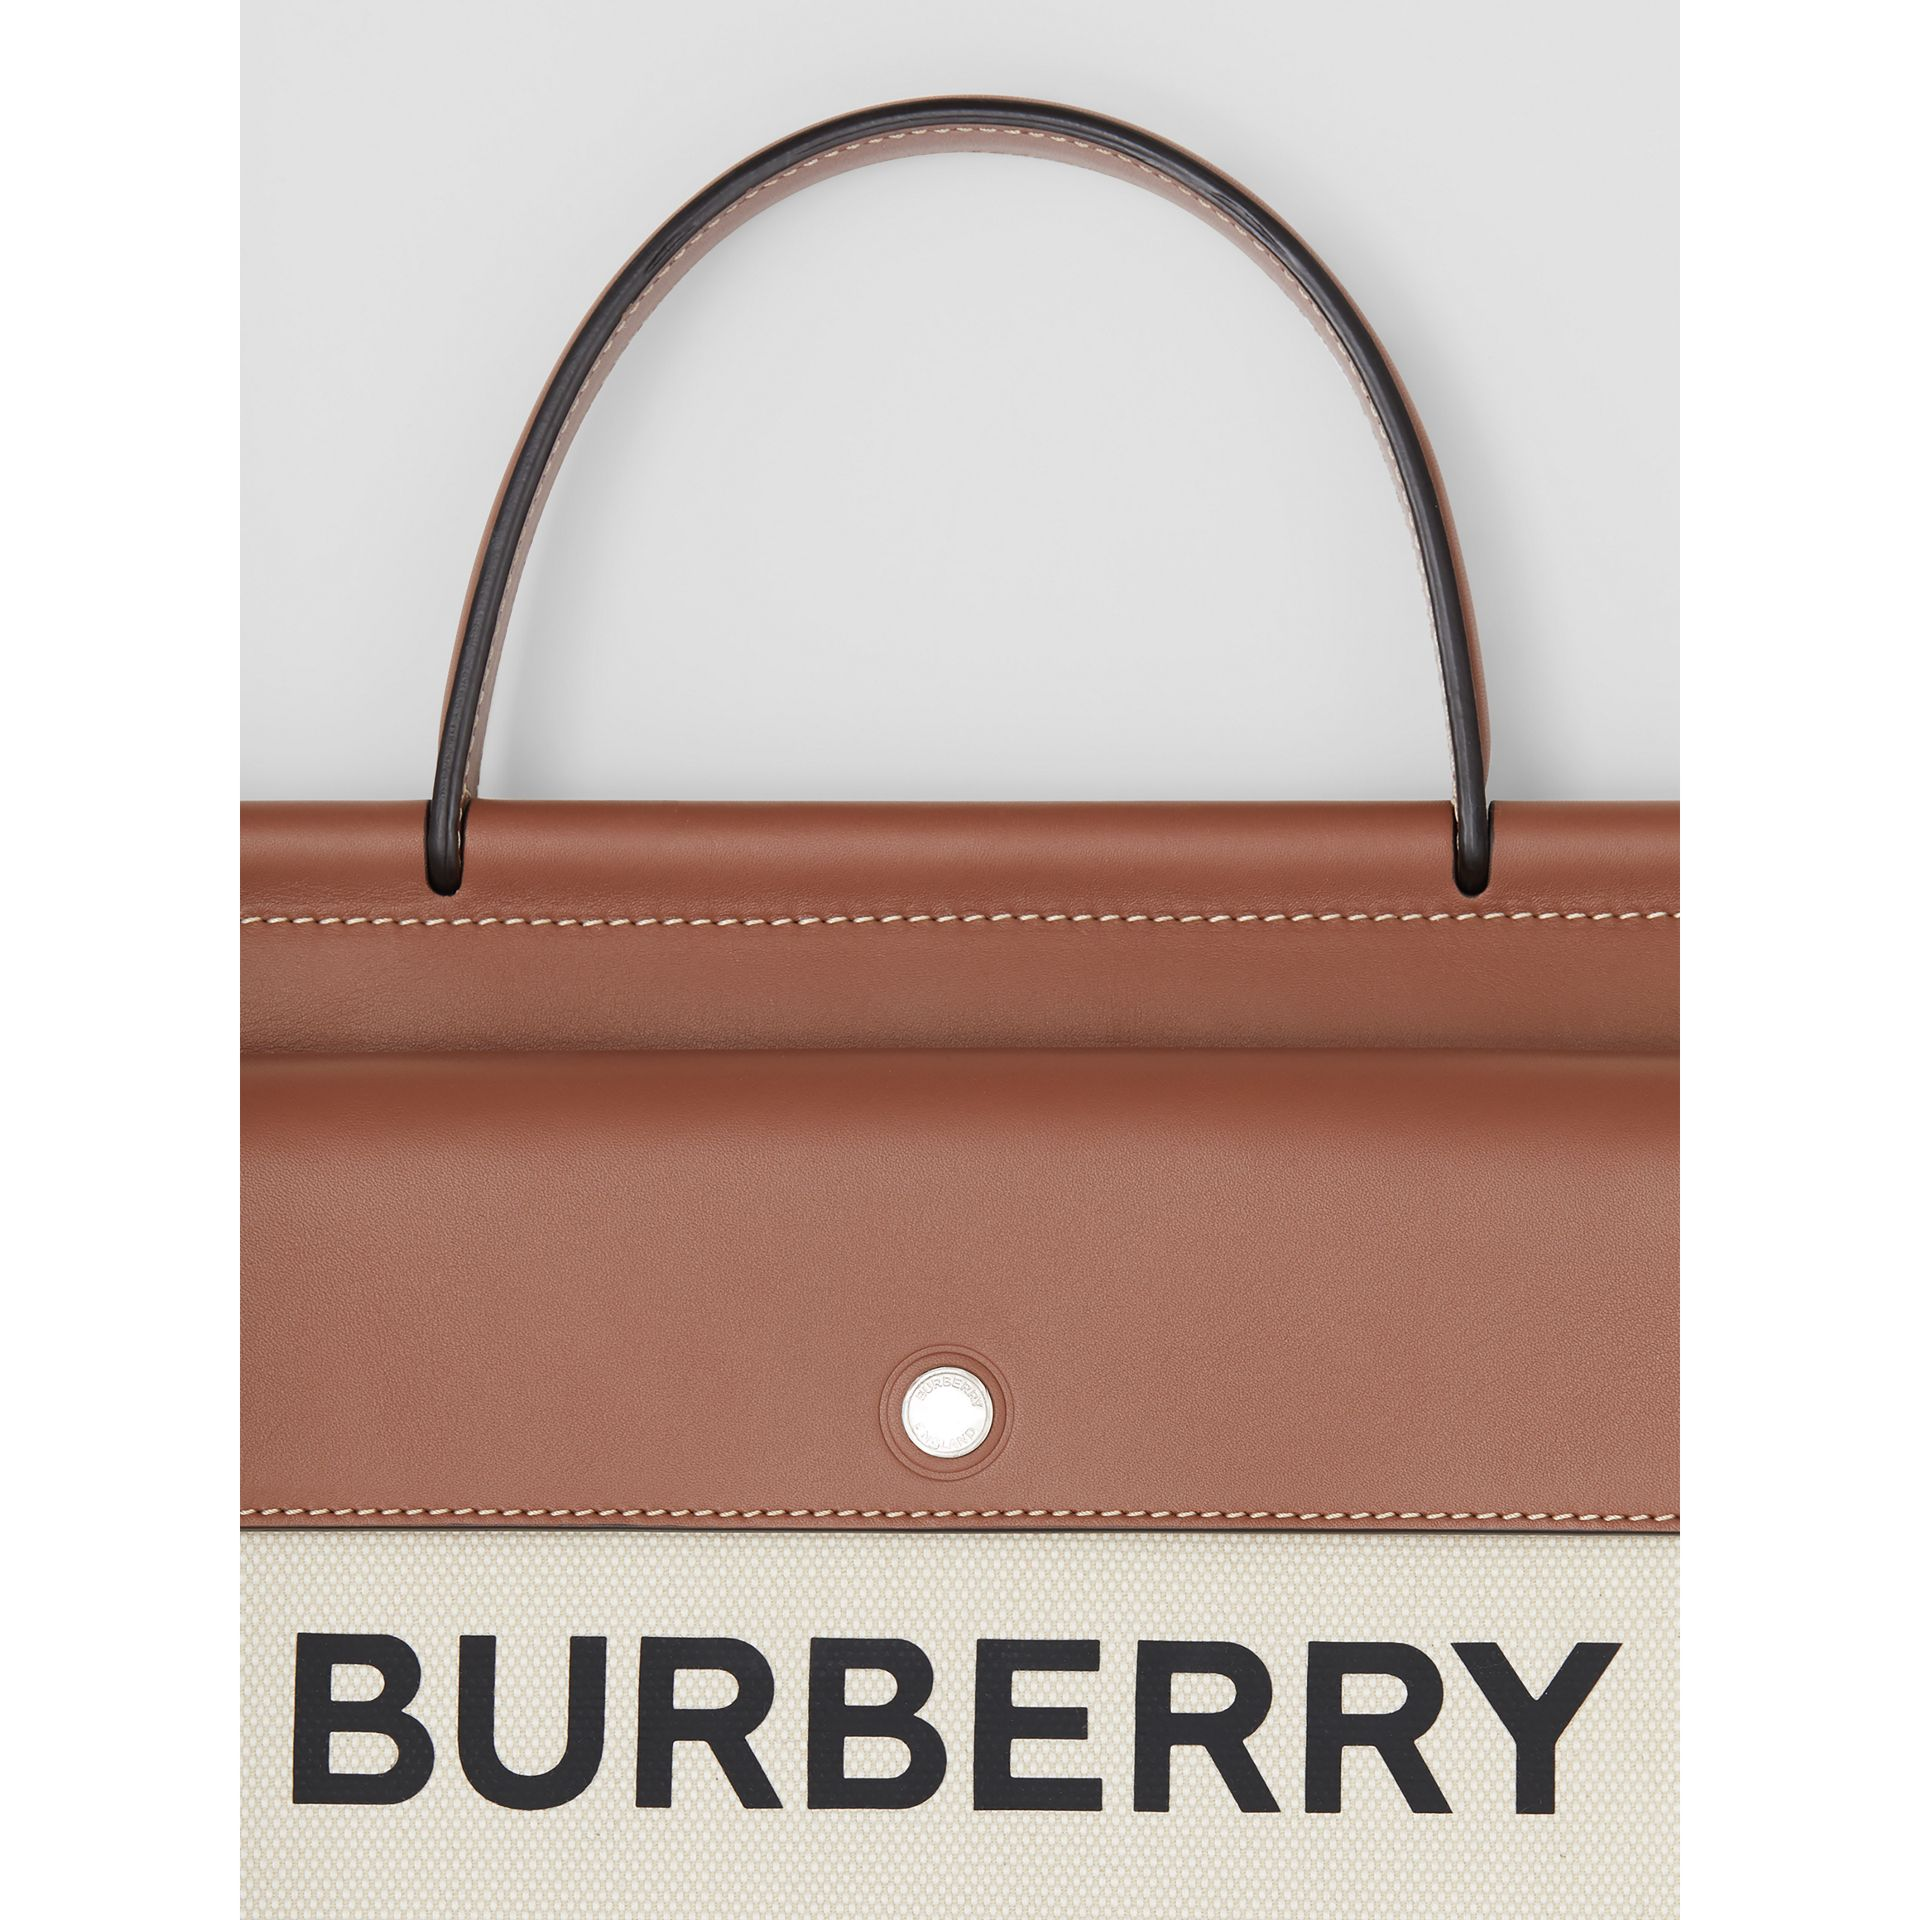 Small Horseferry Print Title Bag with Pocket Detail in Natural/malt Brown - Women | Burberry - gallery image 1